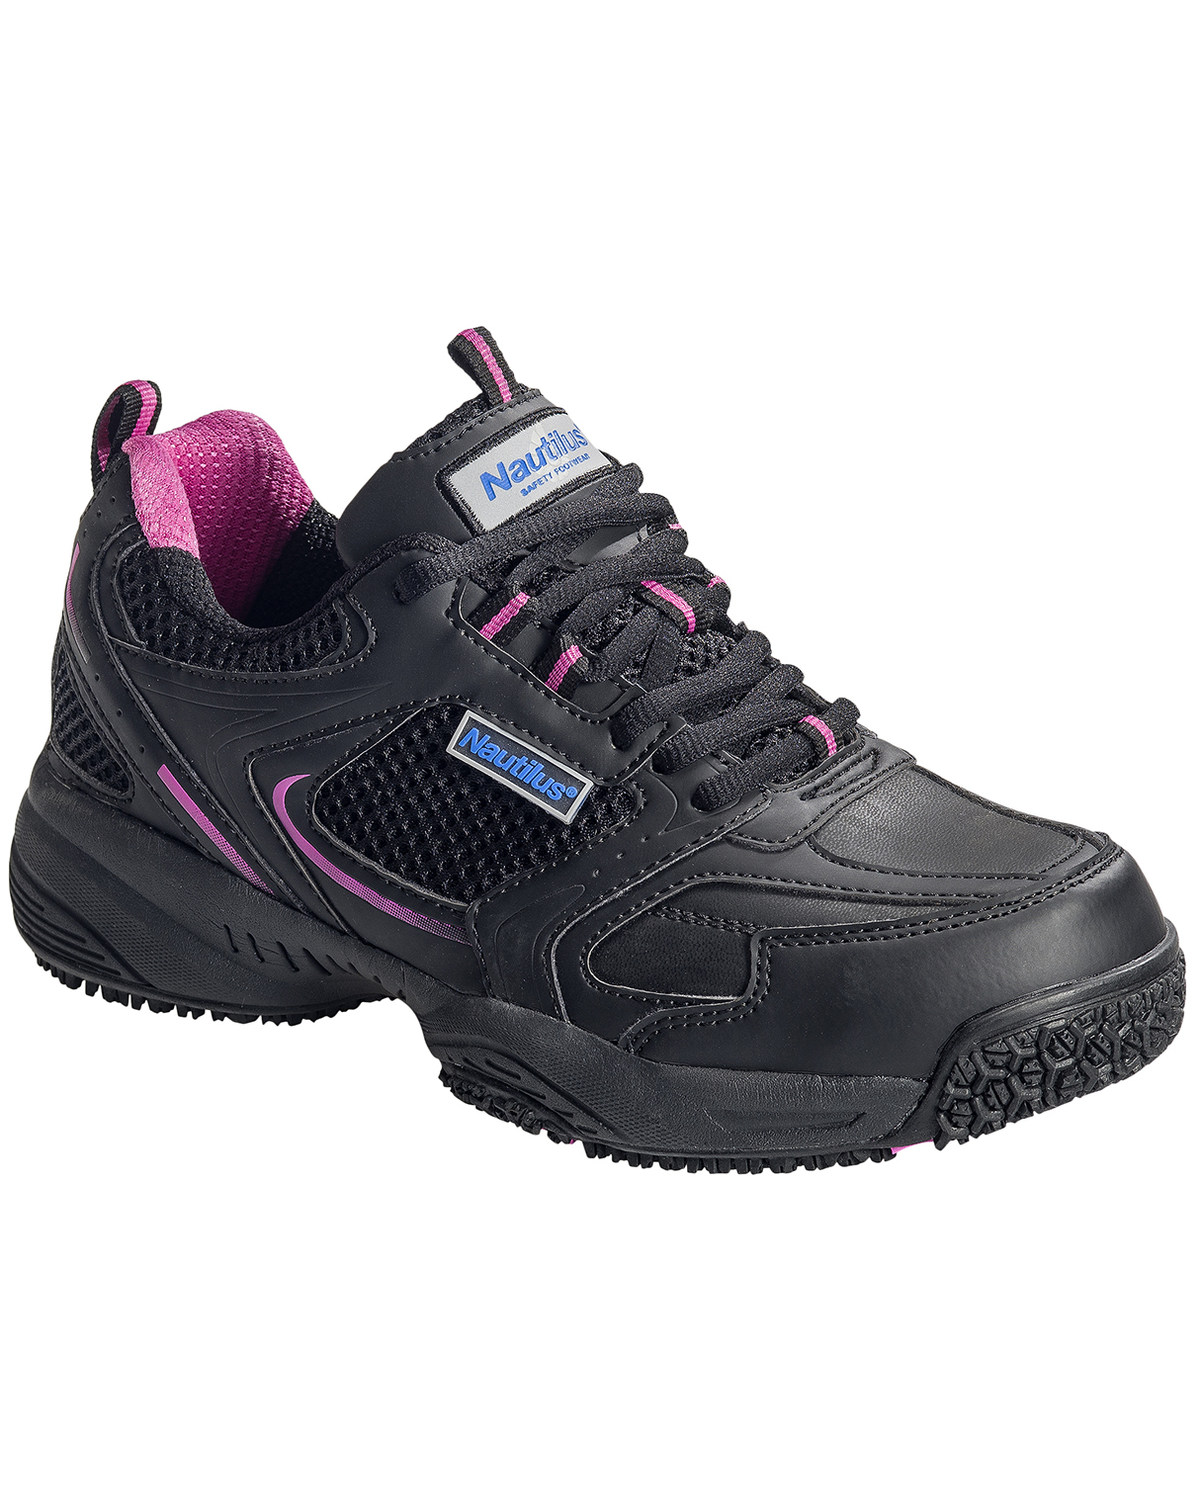 790b404db55abd Zoomed Image Nautilus Women's Steel Toe Slip Resistant Safety Shoes, Black,  ...